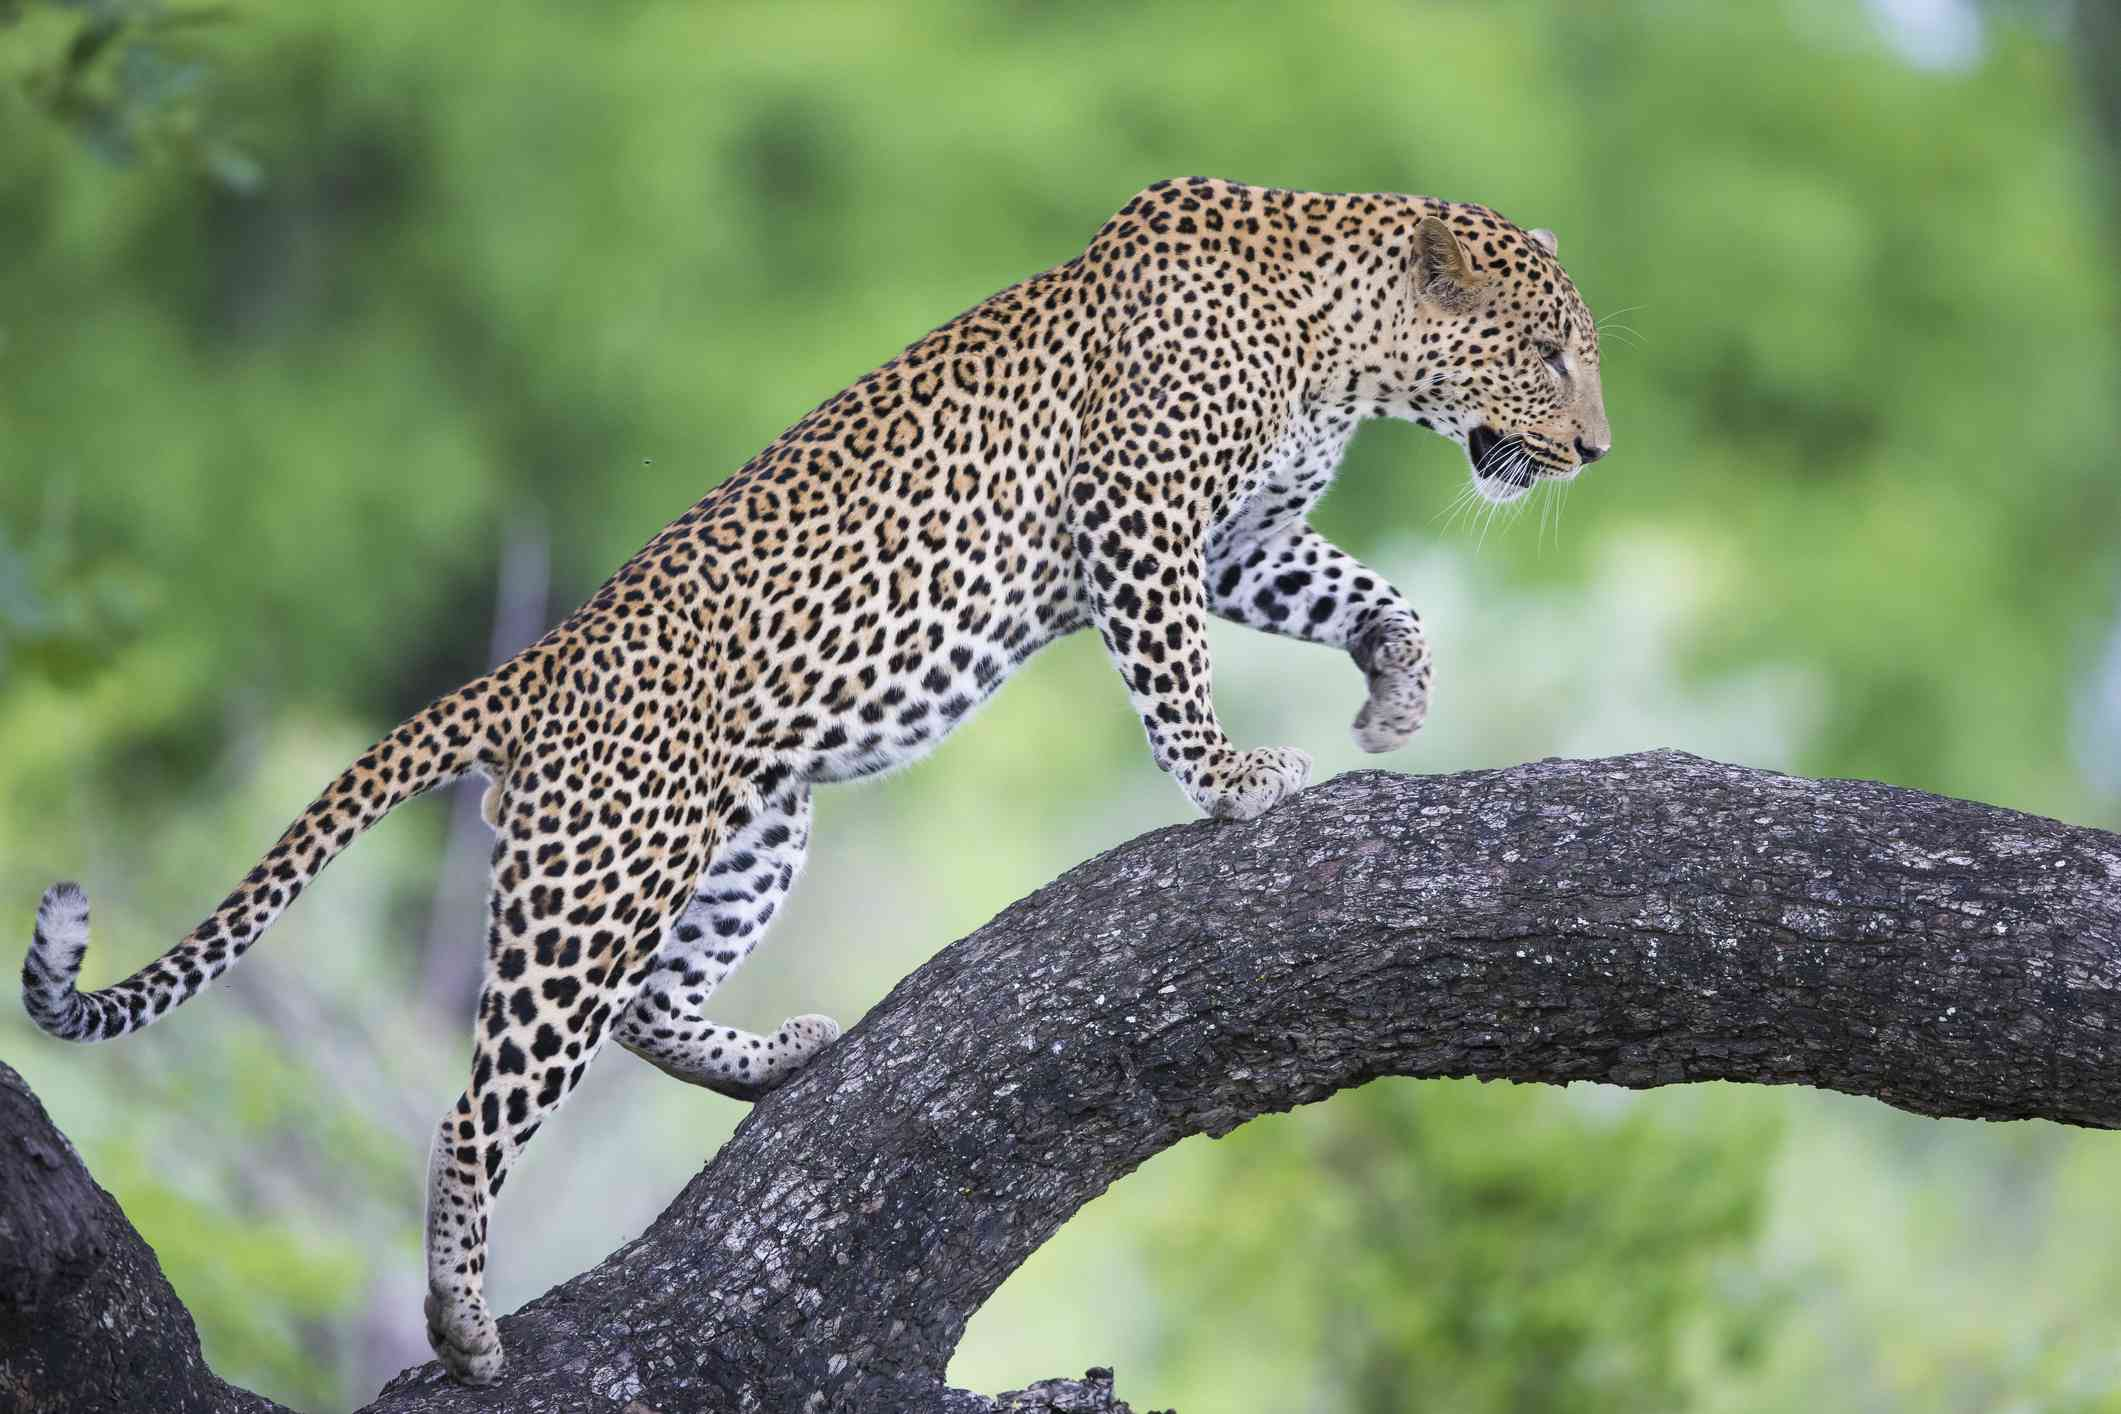 Leopard on a branch, South Luangwa National Park